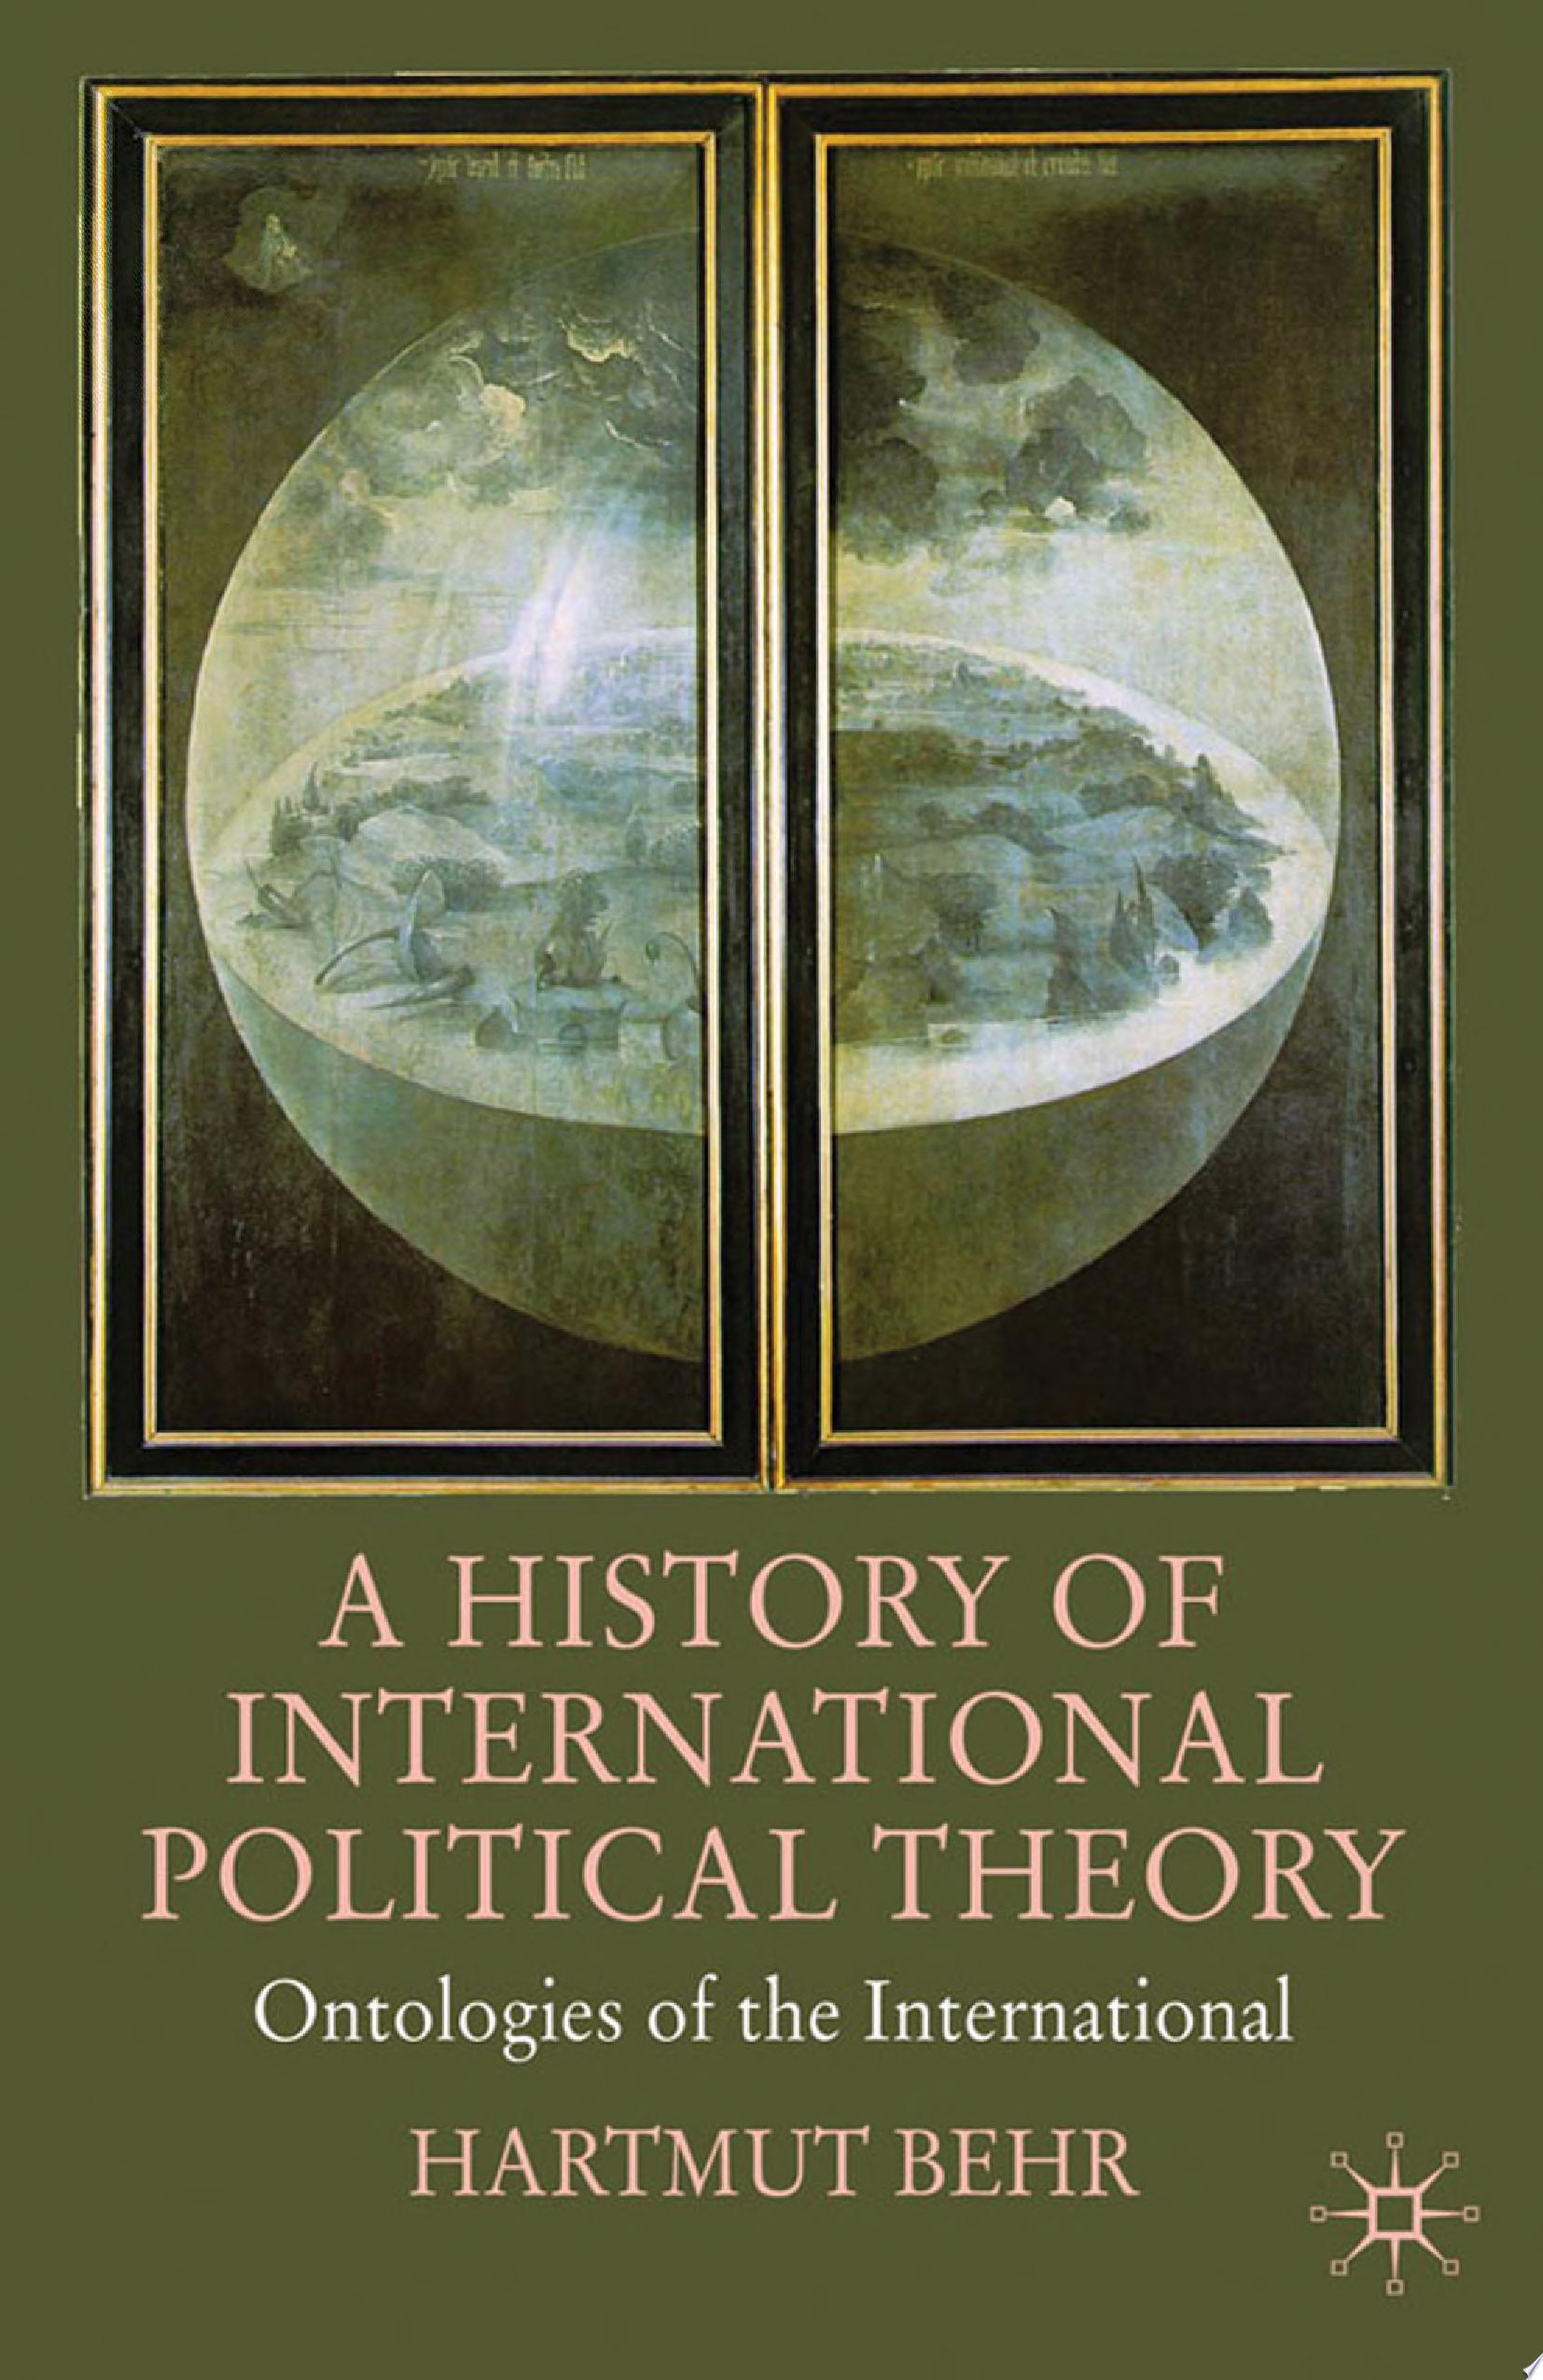 A History of International Political Theory